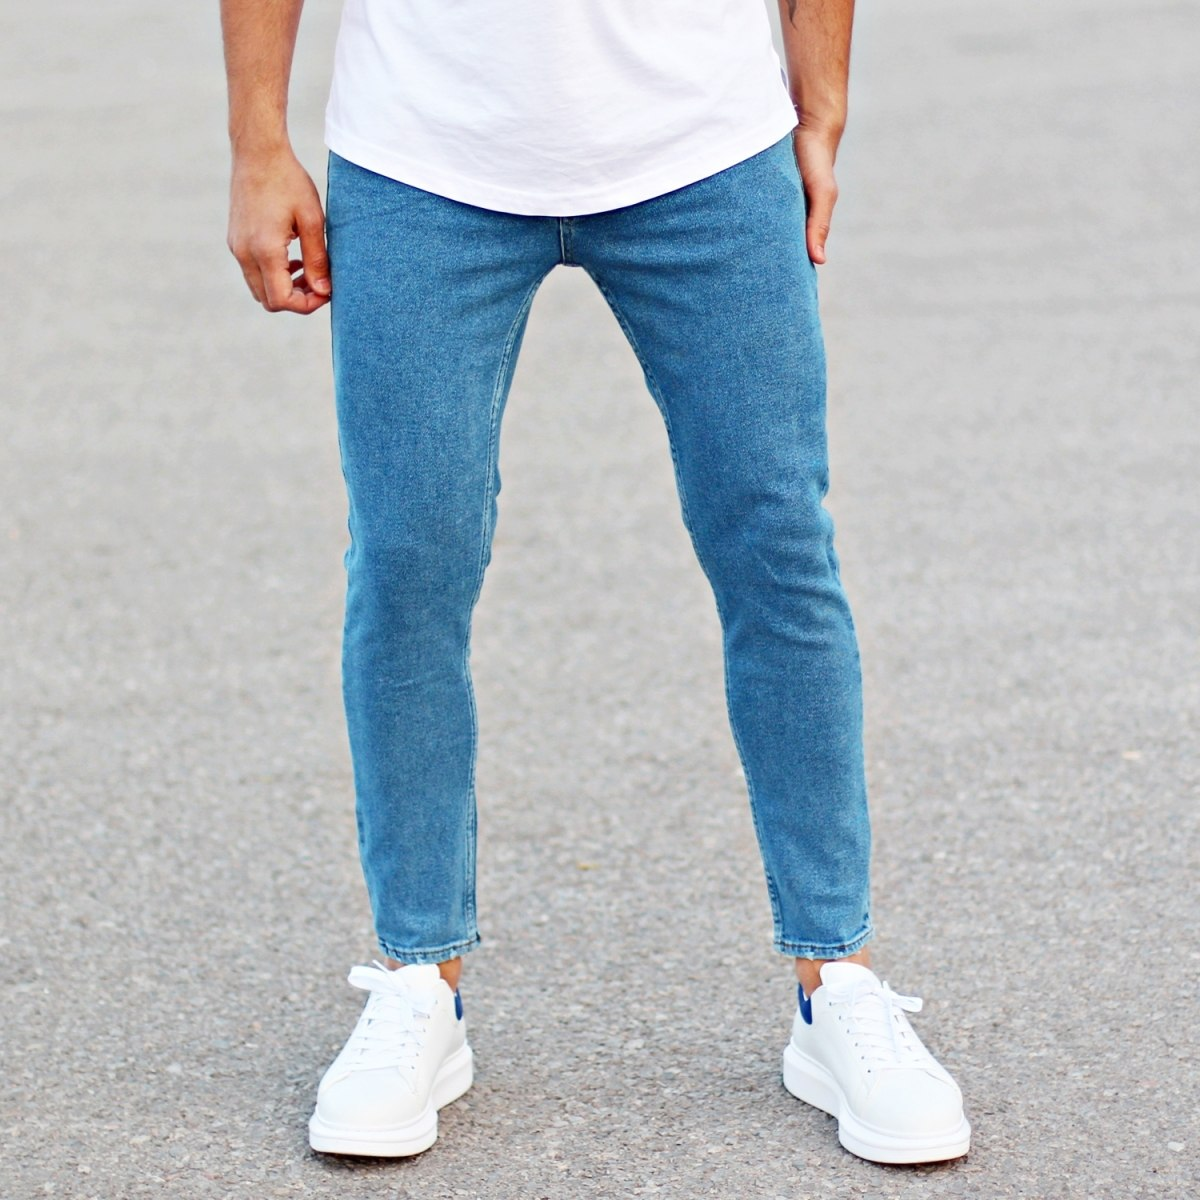 Men's Basic Fit Jeans In Blue